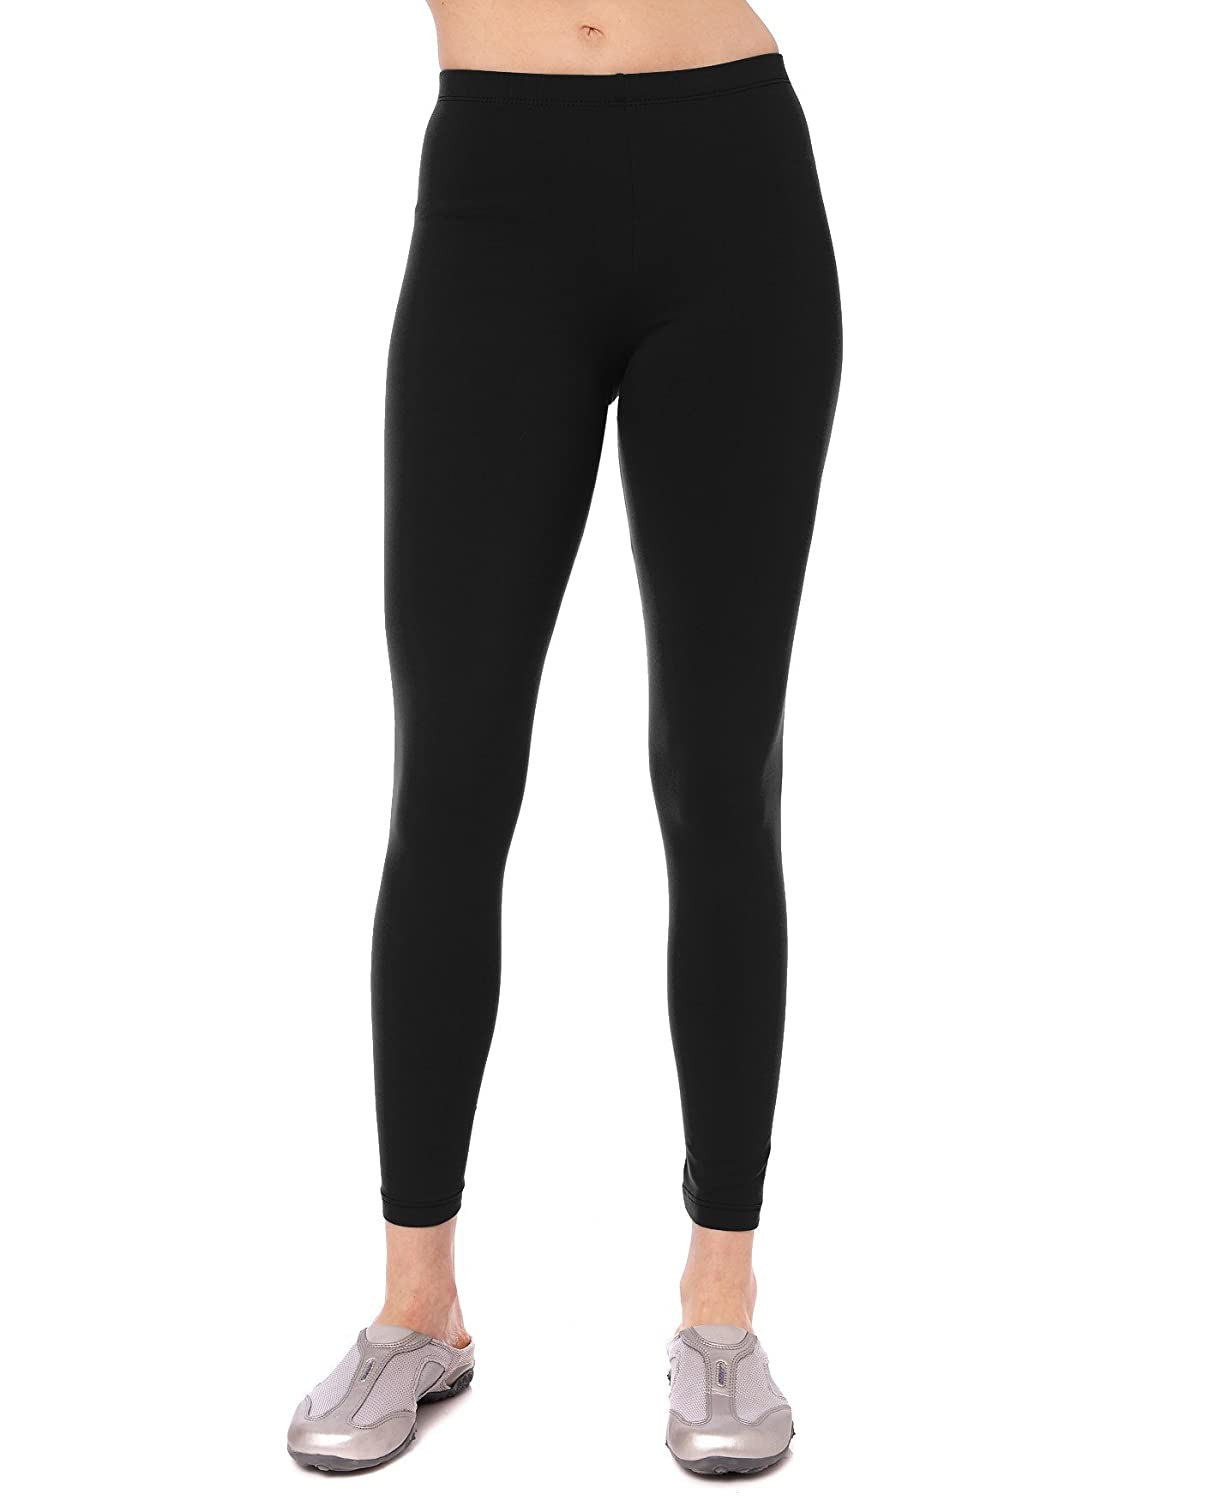 3243910d518033 Also, once upon a time (last year), Costco sold the best leggings in the  world. My friends and sisters have been searching to no avail.